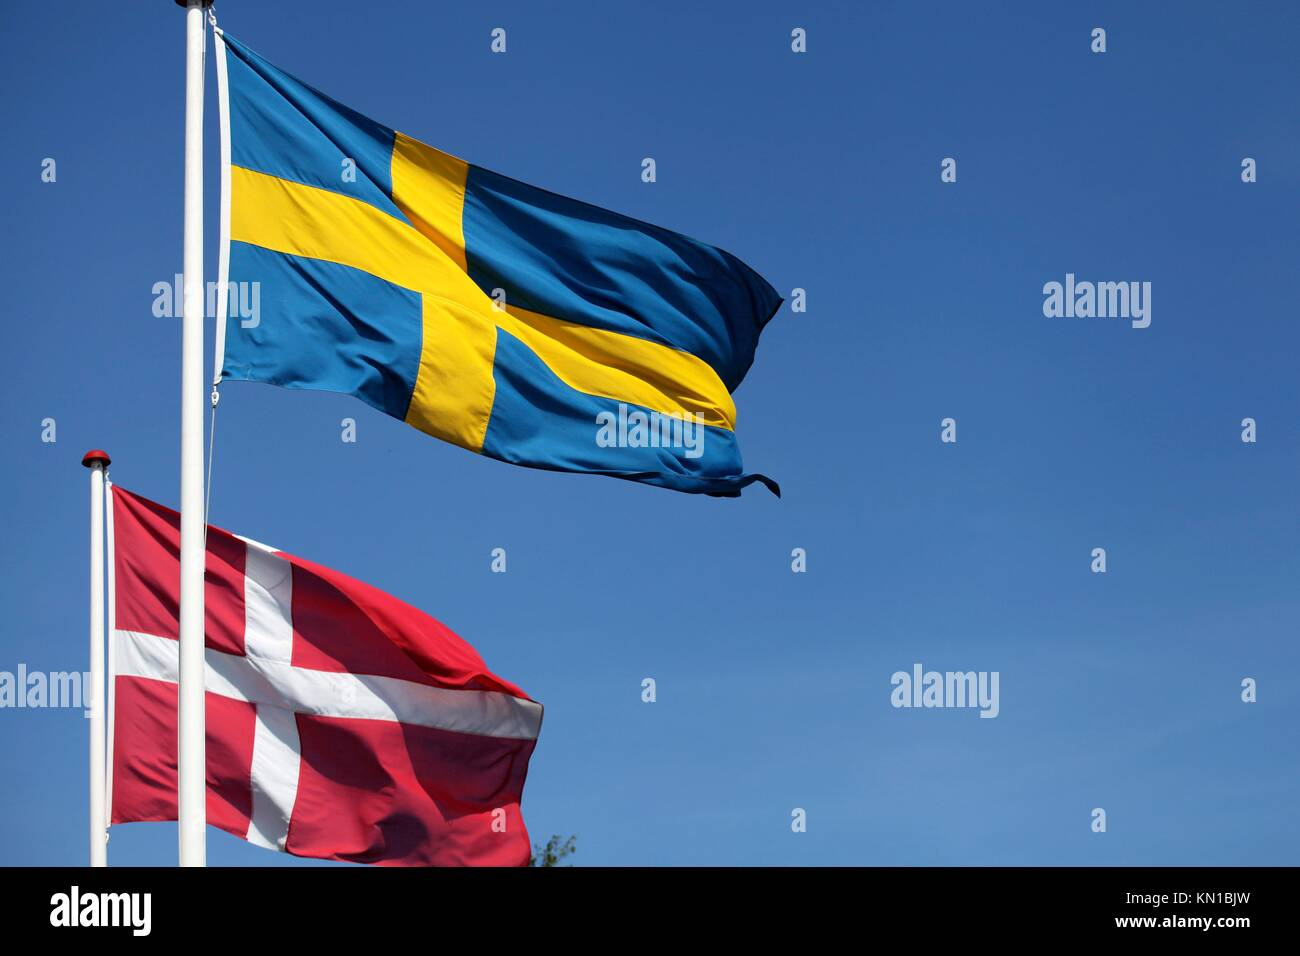 Denmark and Sweden - flags greeting the event - Stock Image